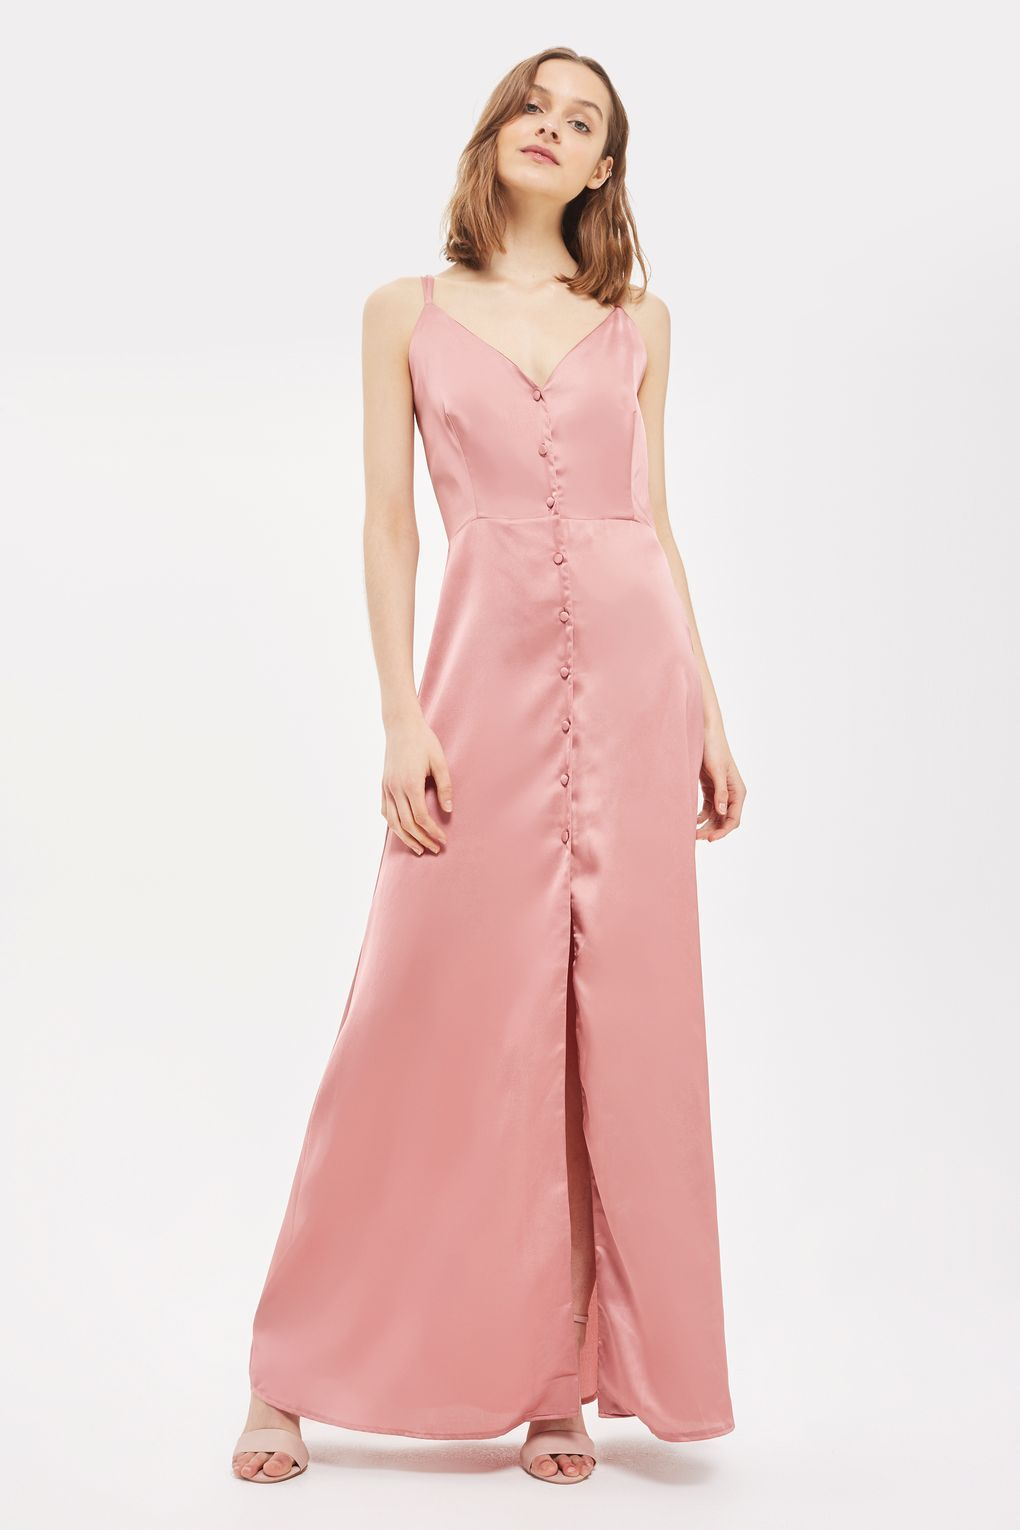 71ee6d955f   Satin Button Down Maxi Dress by Oh My Love - Dresses - Clothing - Topshop  USA